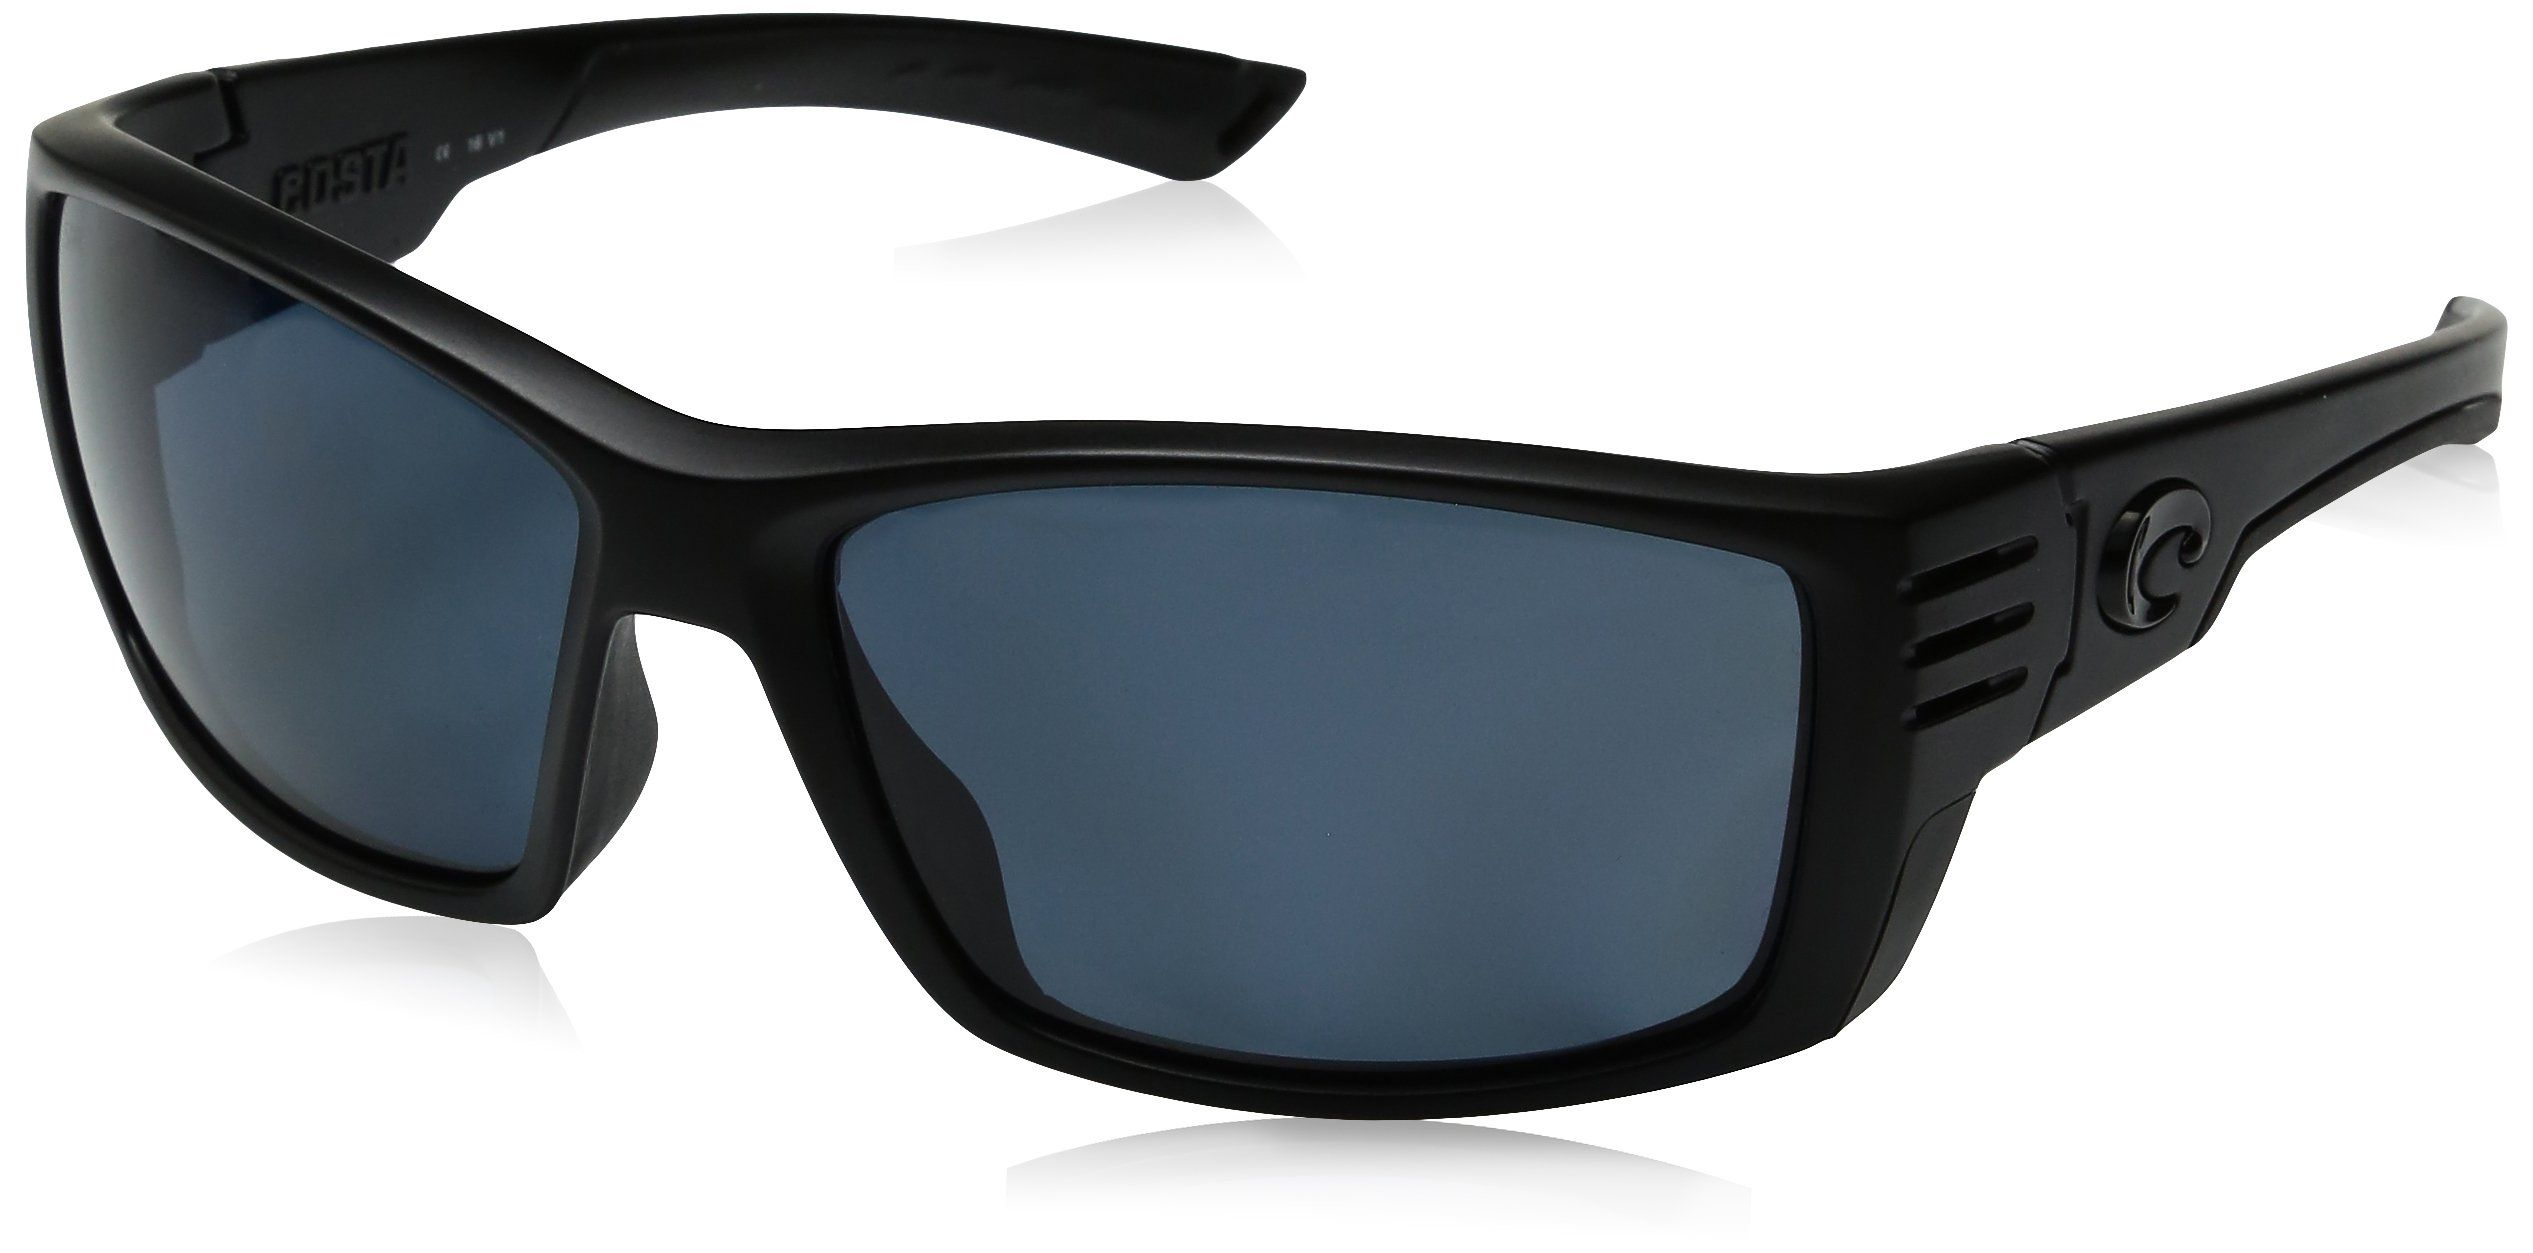 720b61d0fc6 Costa Del Mar Cortez Sunglasses CZ 01 OGP Blackout Gray 580 Plastic ...